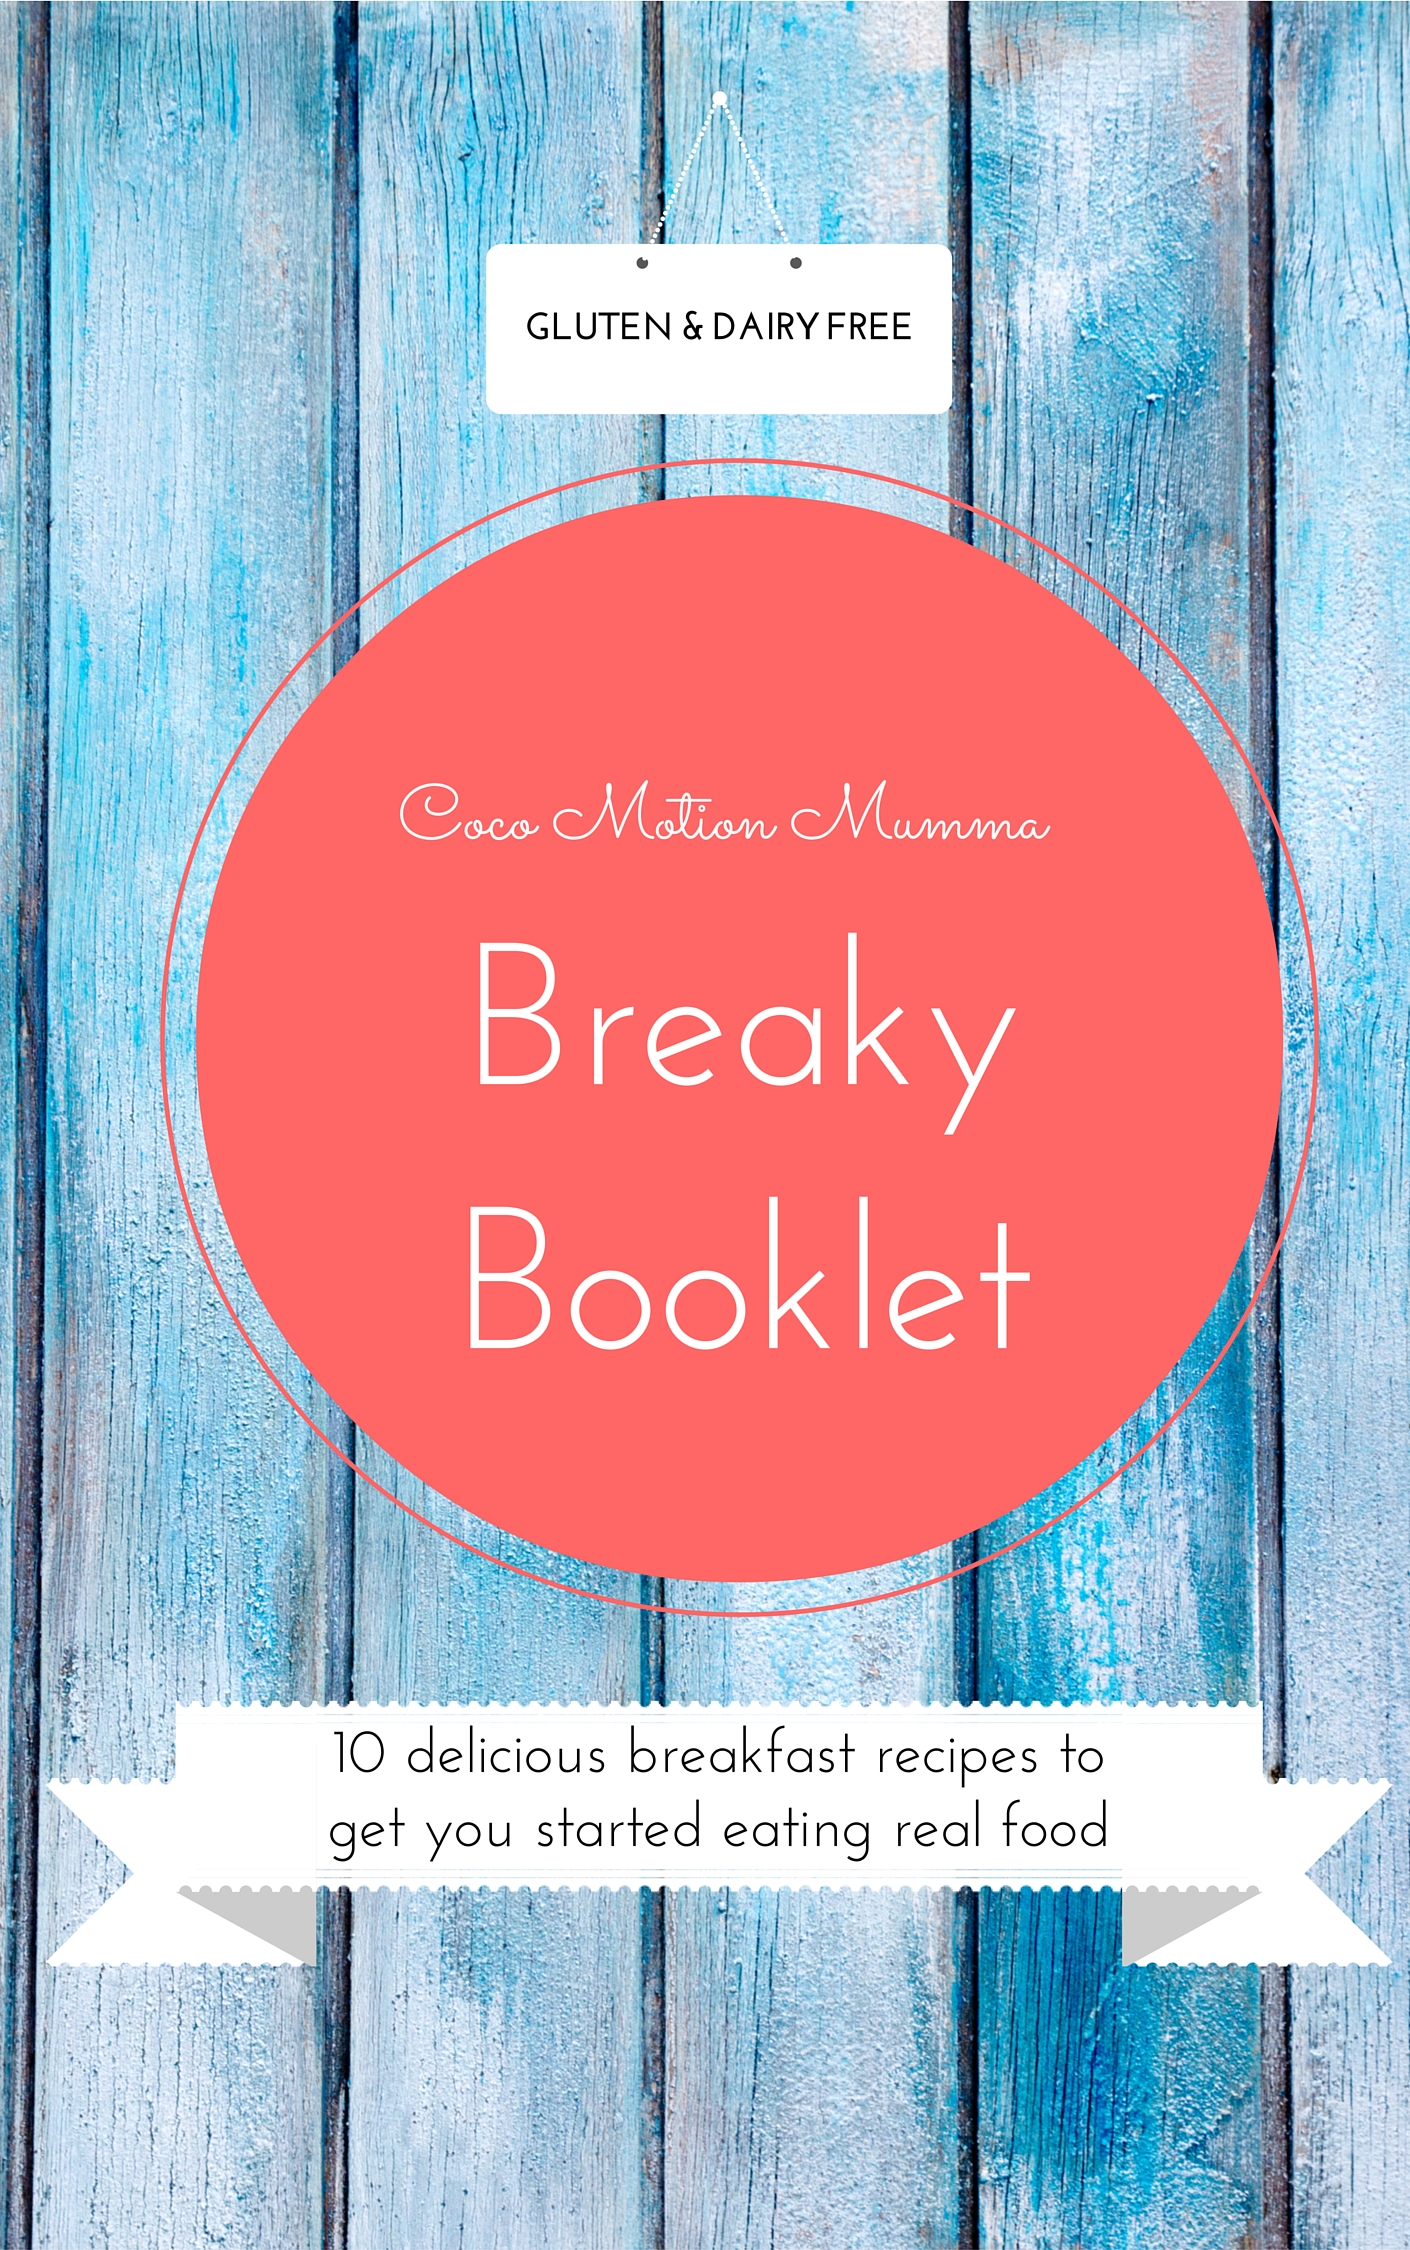 Breaky Booklet -   CLICK HERE